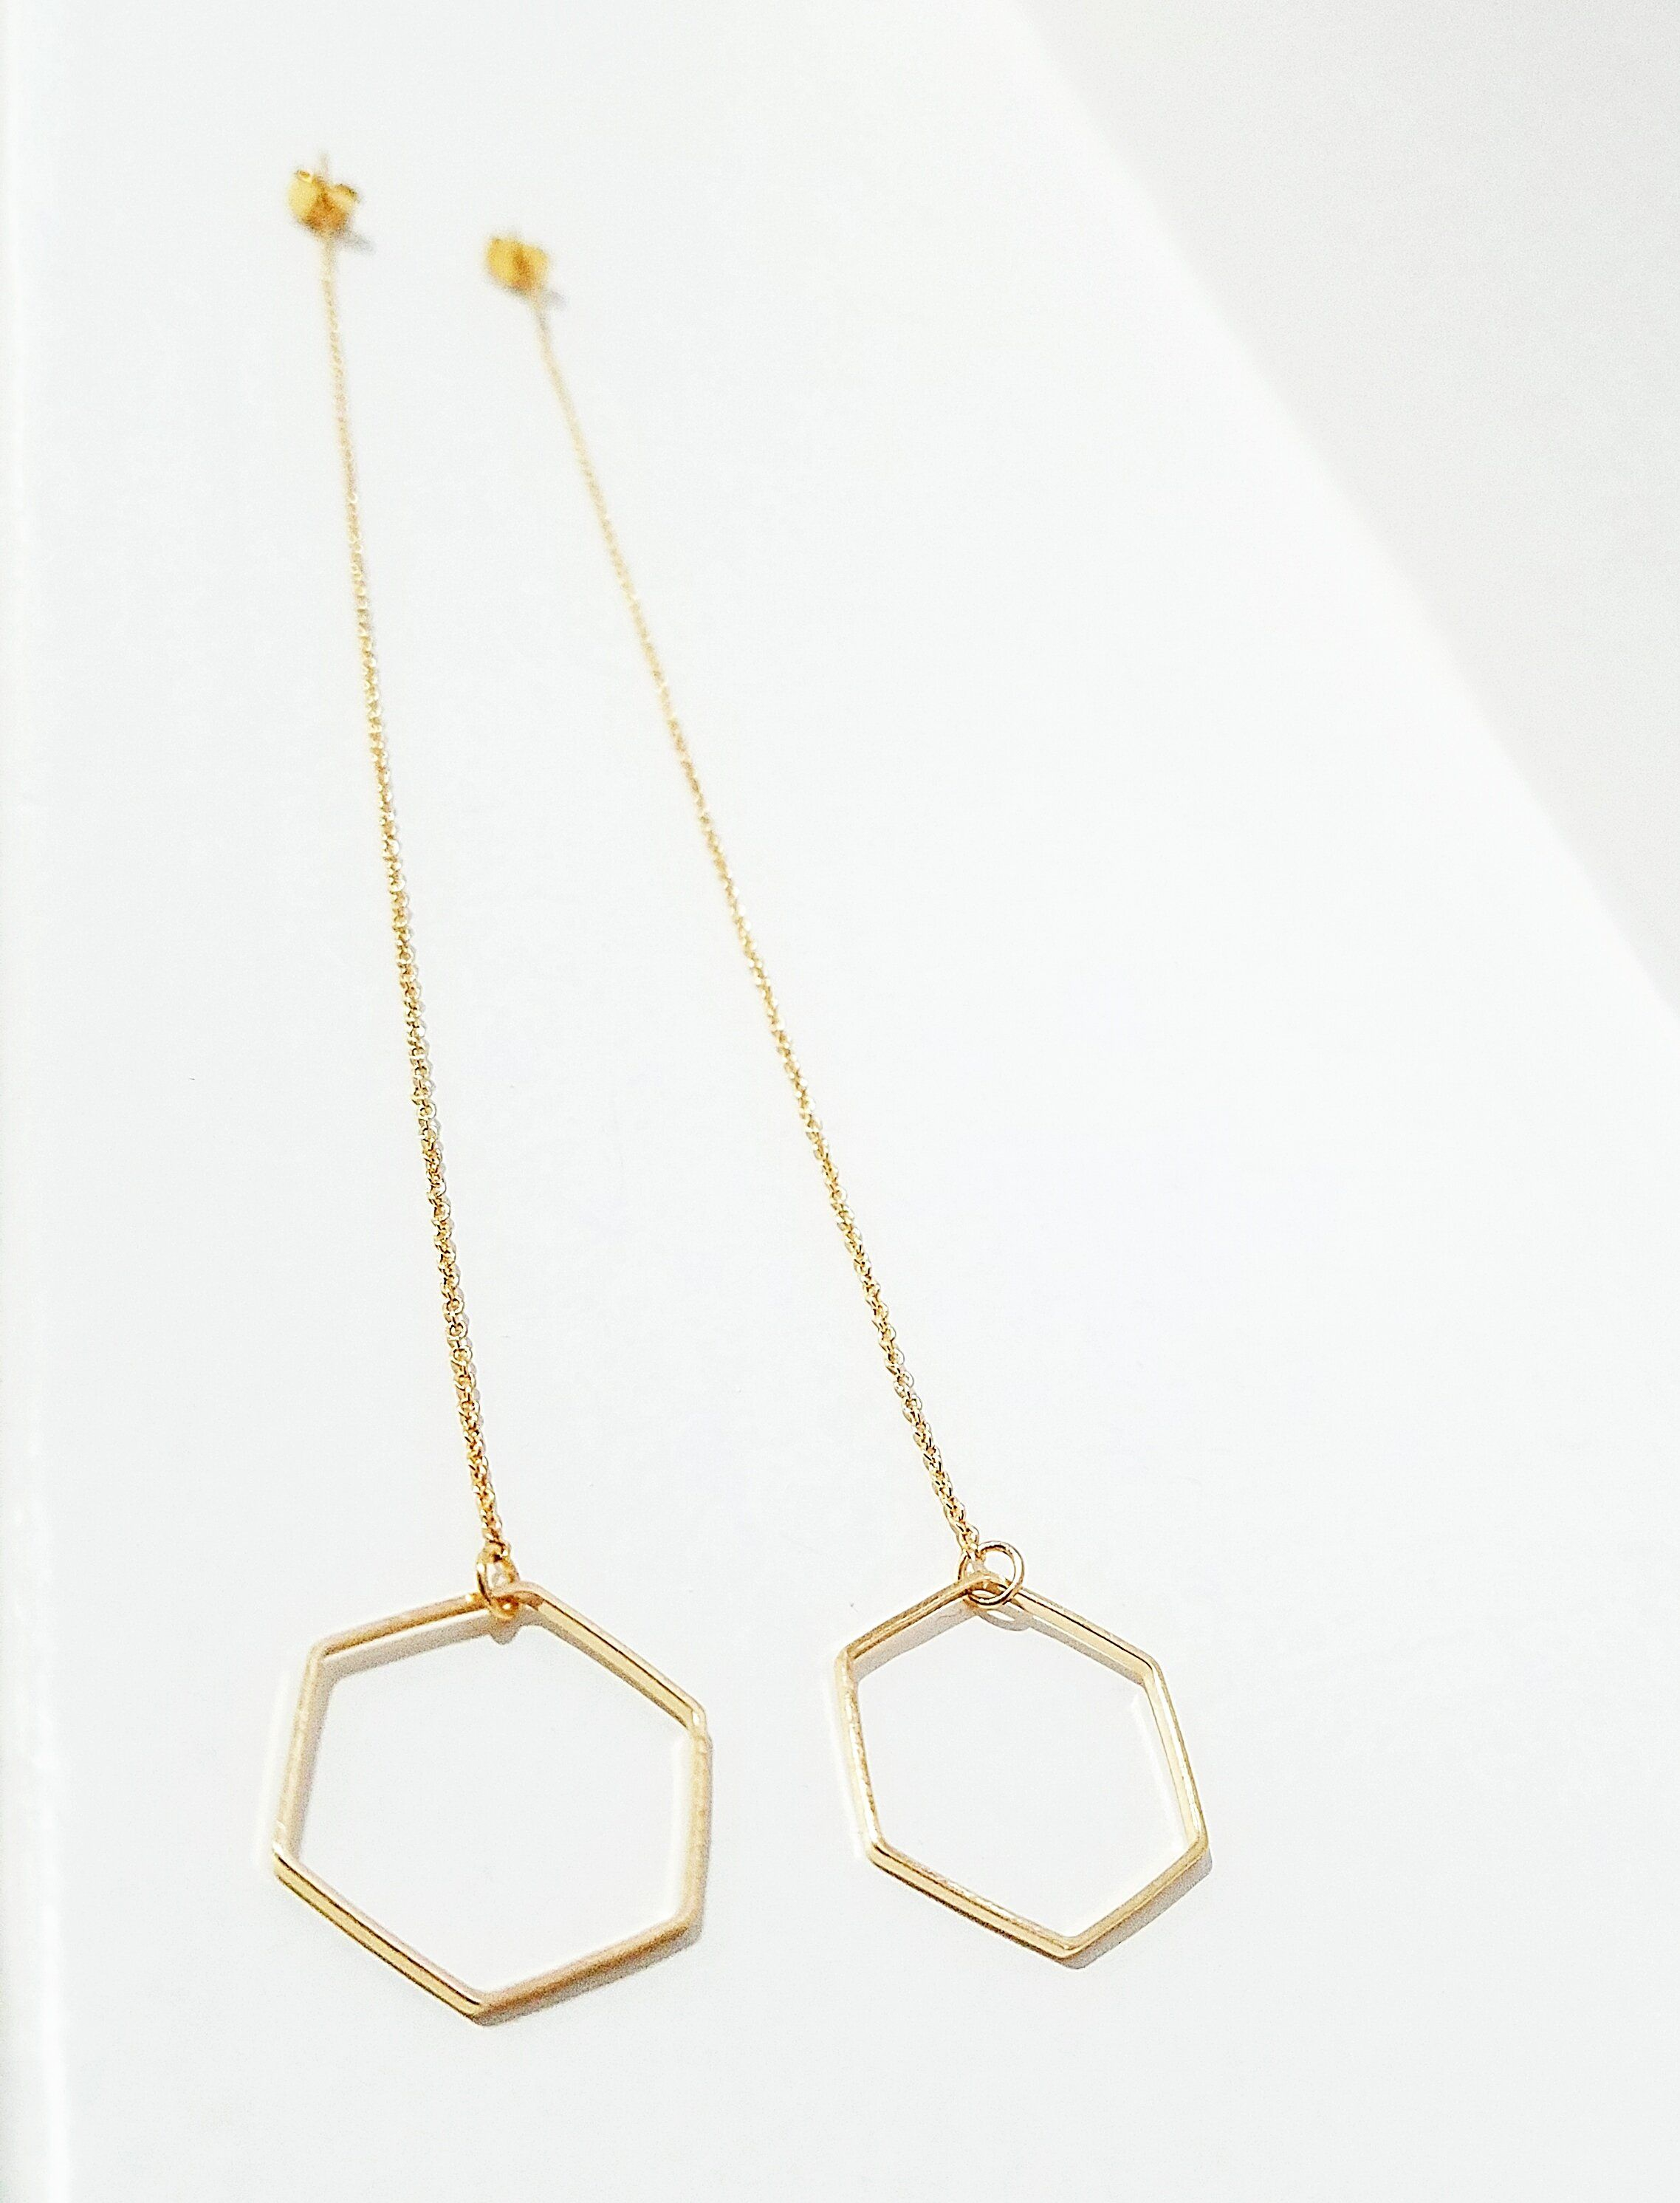 hexagon love look the earrings products new silver brands rkurlmygm at